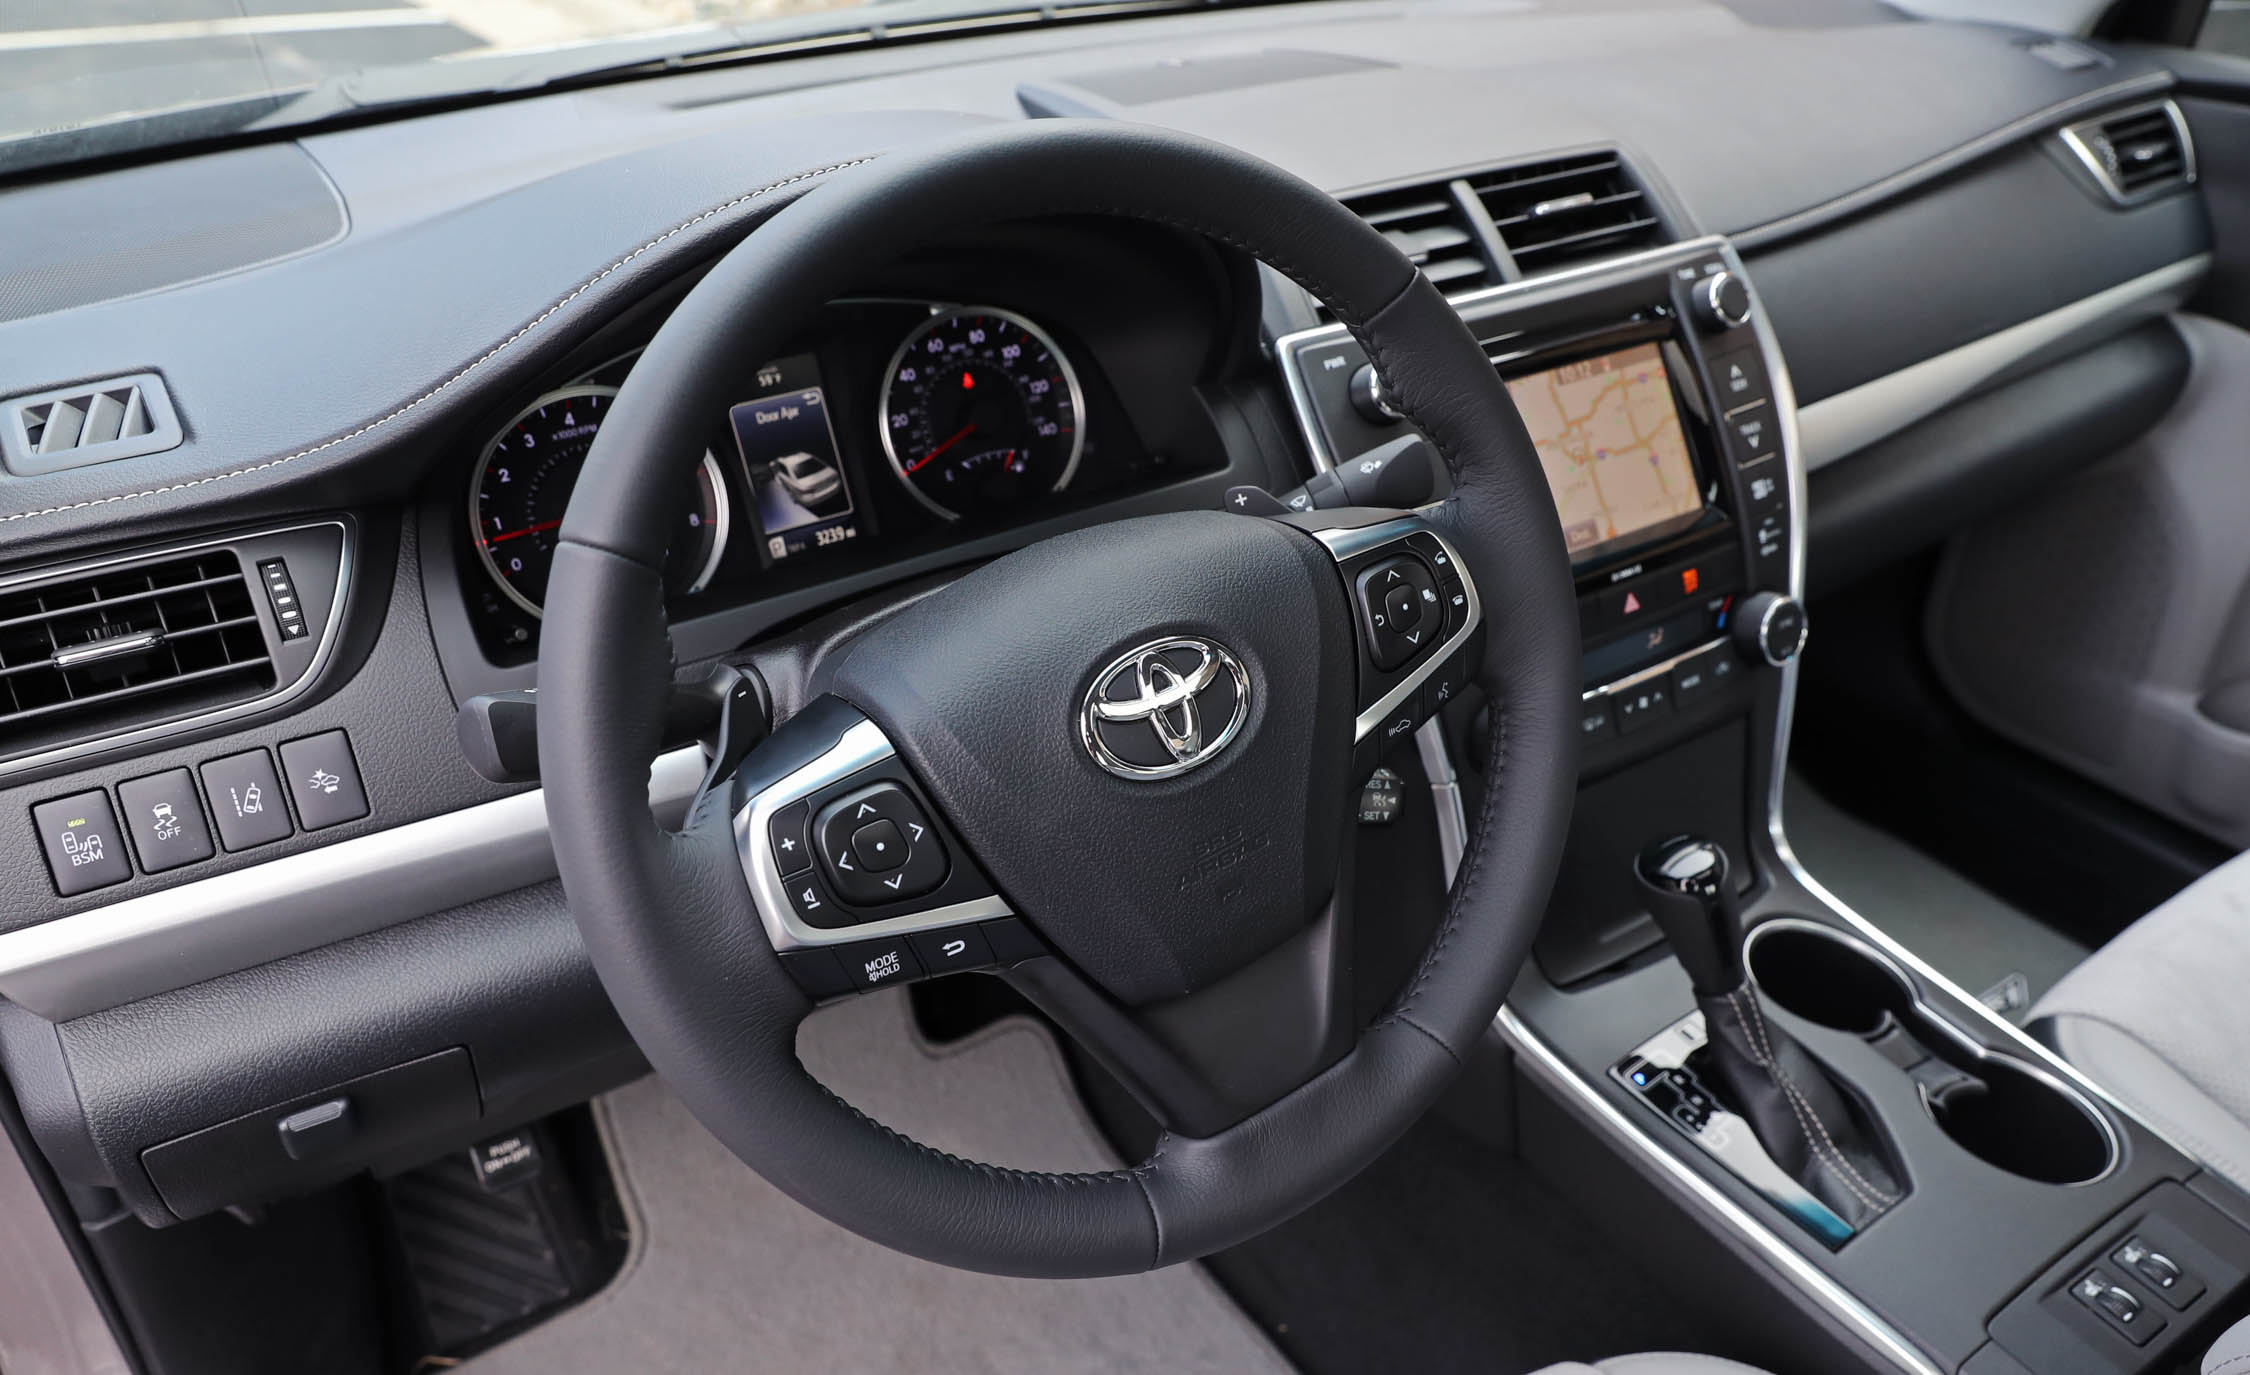 2017 Toyota Camry Interior View Cockpit Steering And Dash (Photo 23 of 37)